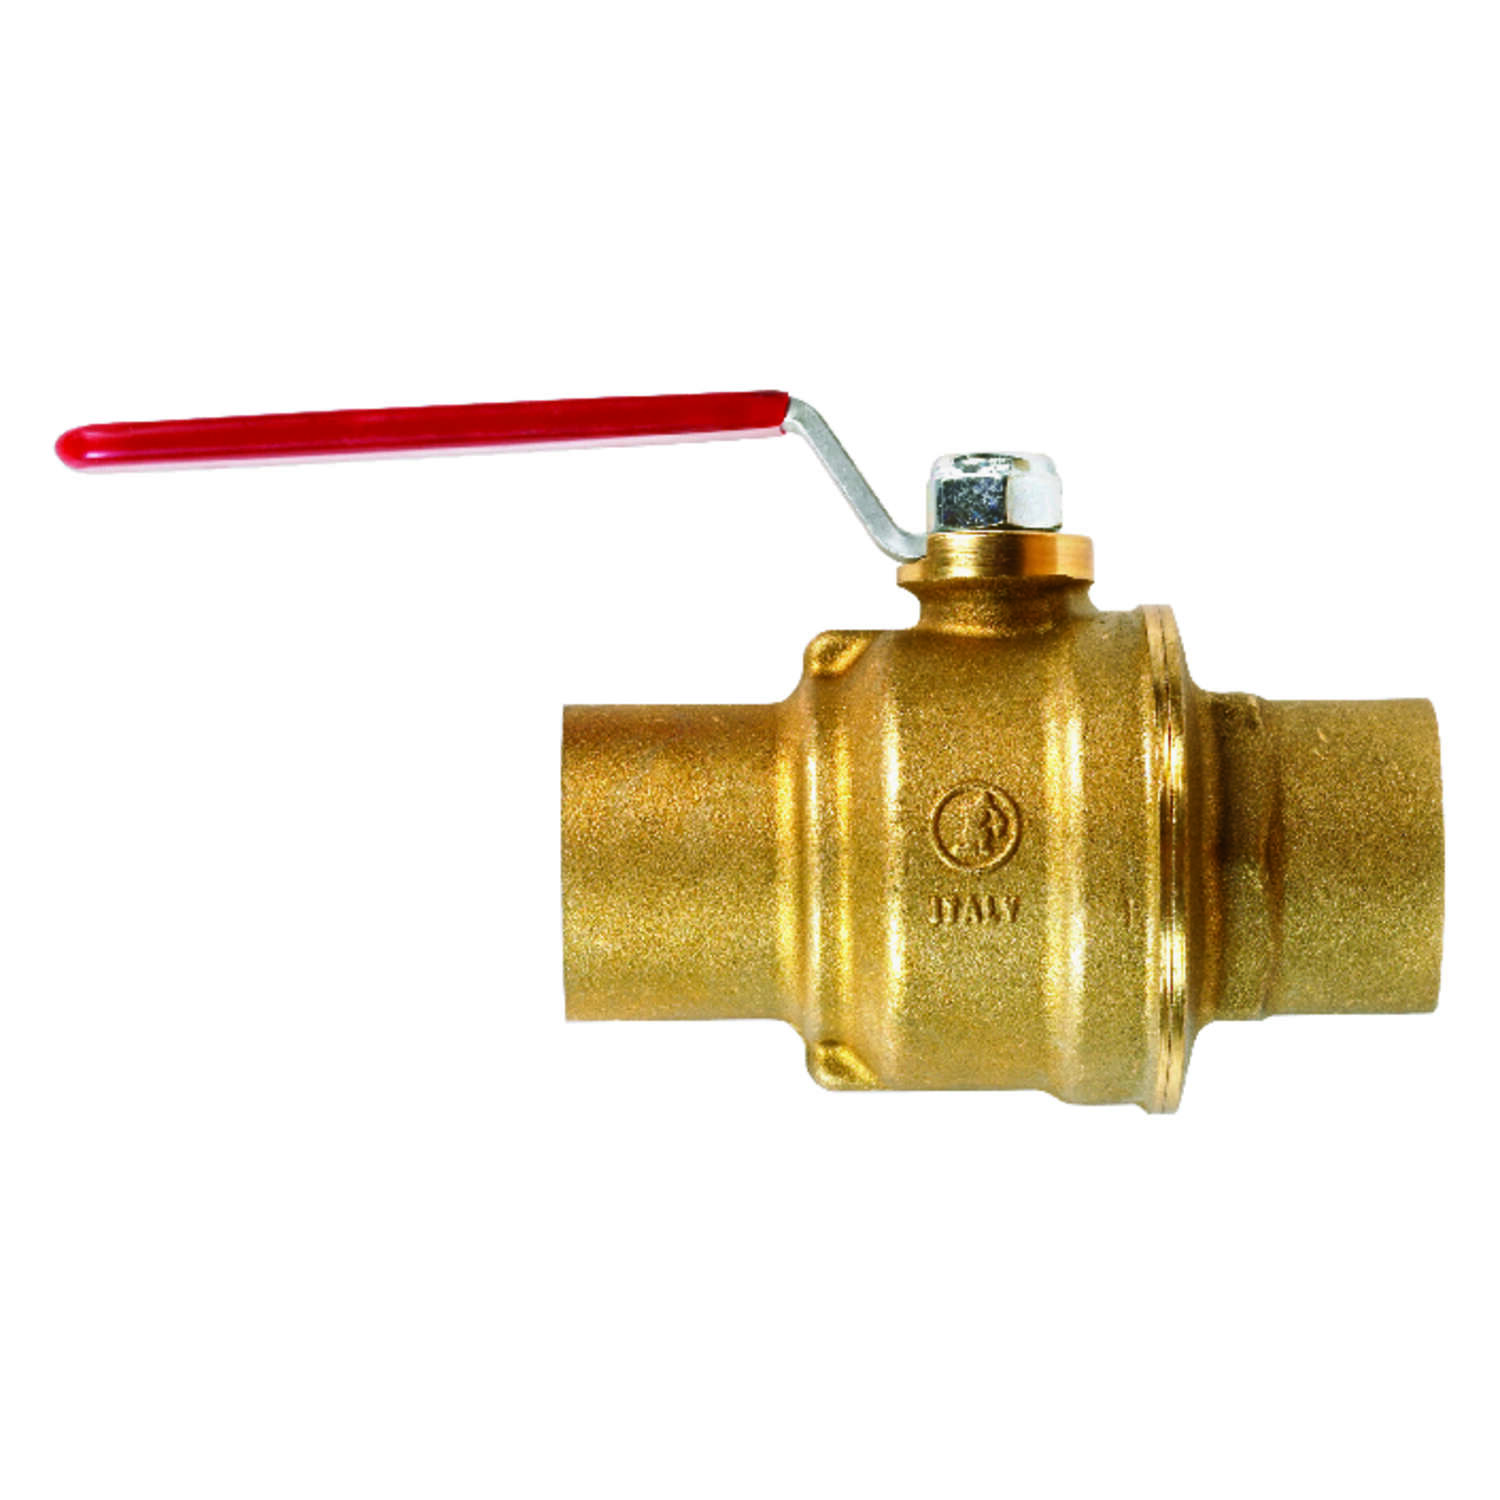 B&K  ProLine  1-1/2 in. Brass  Ball Valve  Full Port